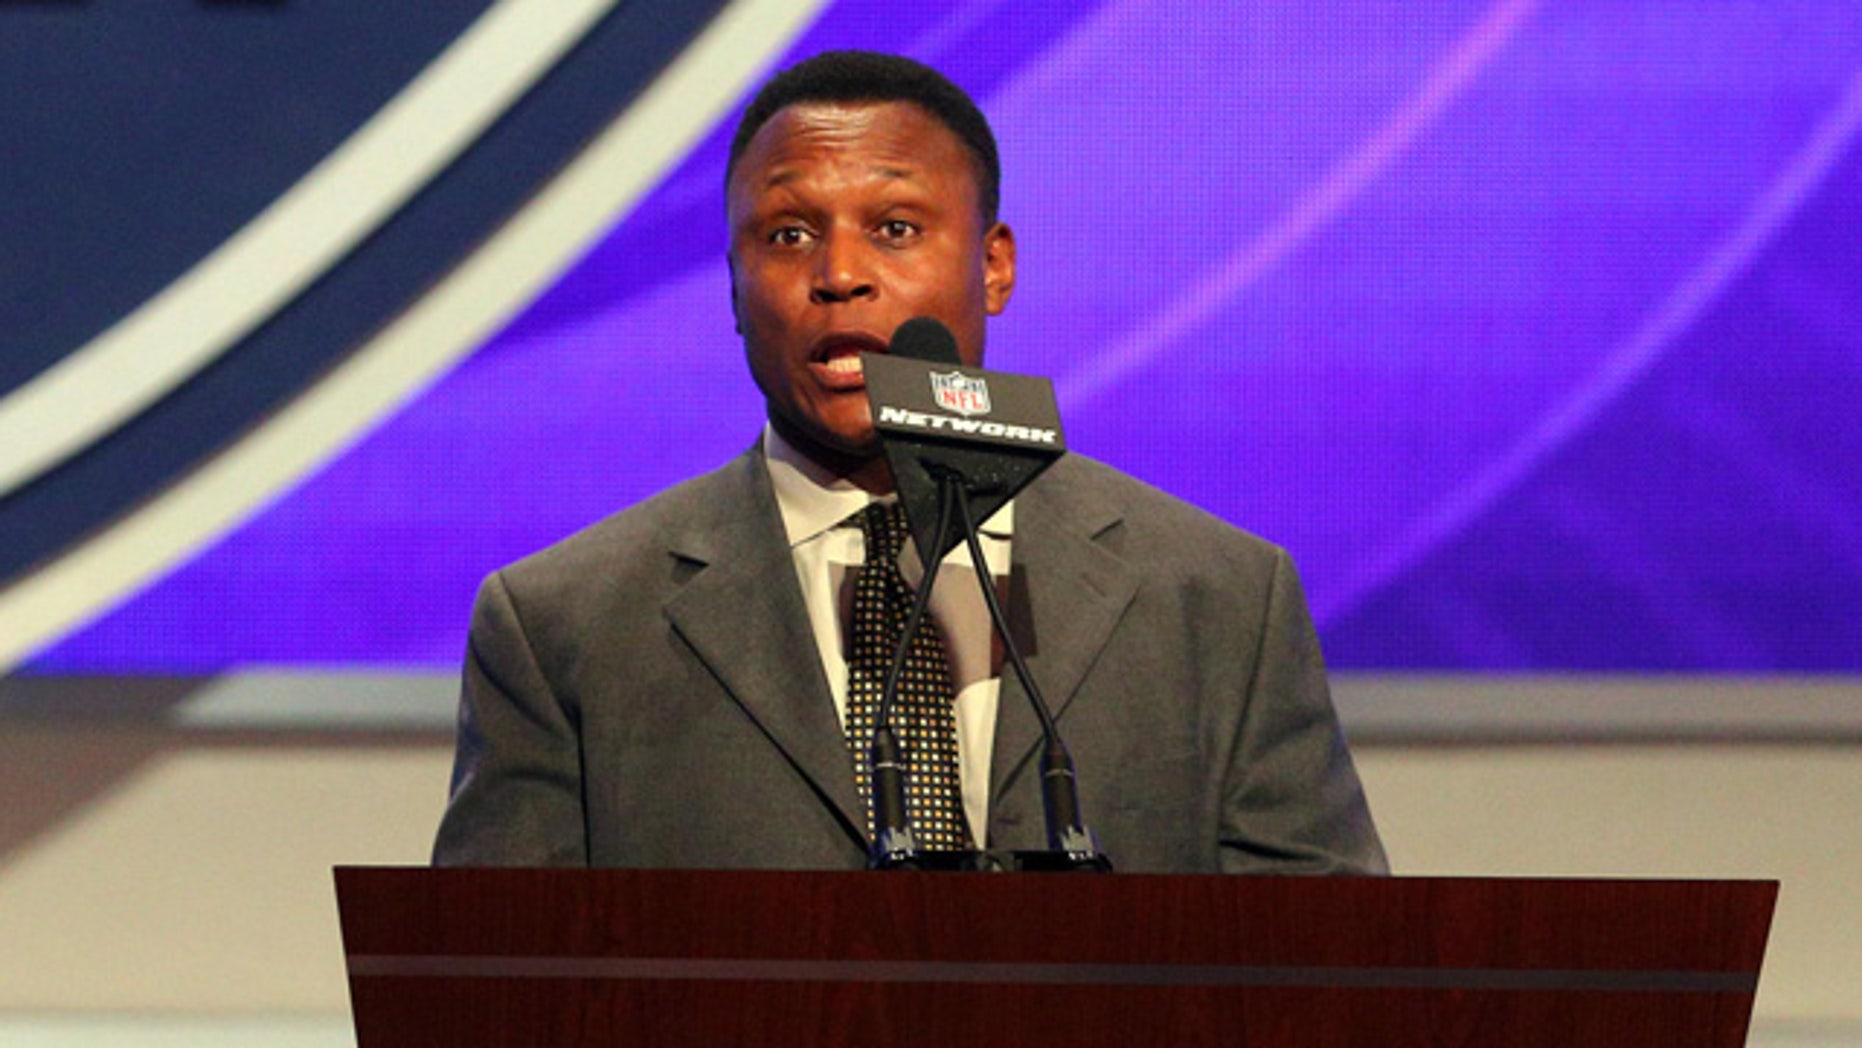 May 8, 2014: Detroit Lions former running back Barry Sanders announces tight end Eric Ebron (North Carolina) as the tenth overall pick in the first round of the 2014 NFL draft by the Detroit Lions during the 2014 NFL draft at Radio City Music Hall.